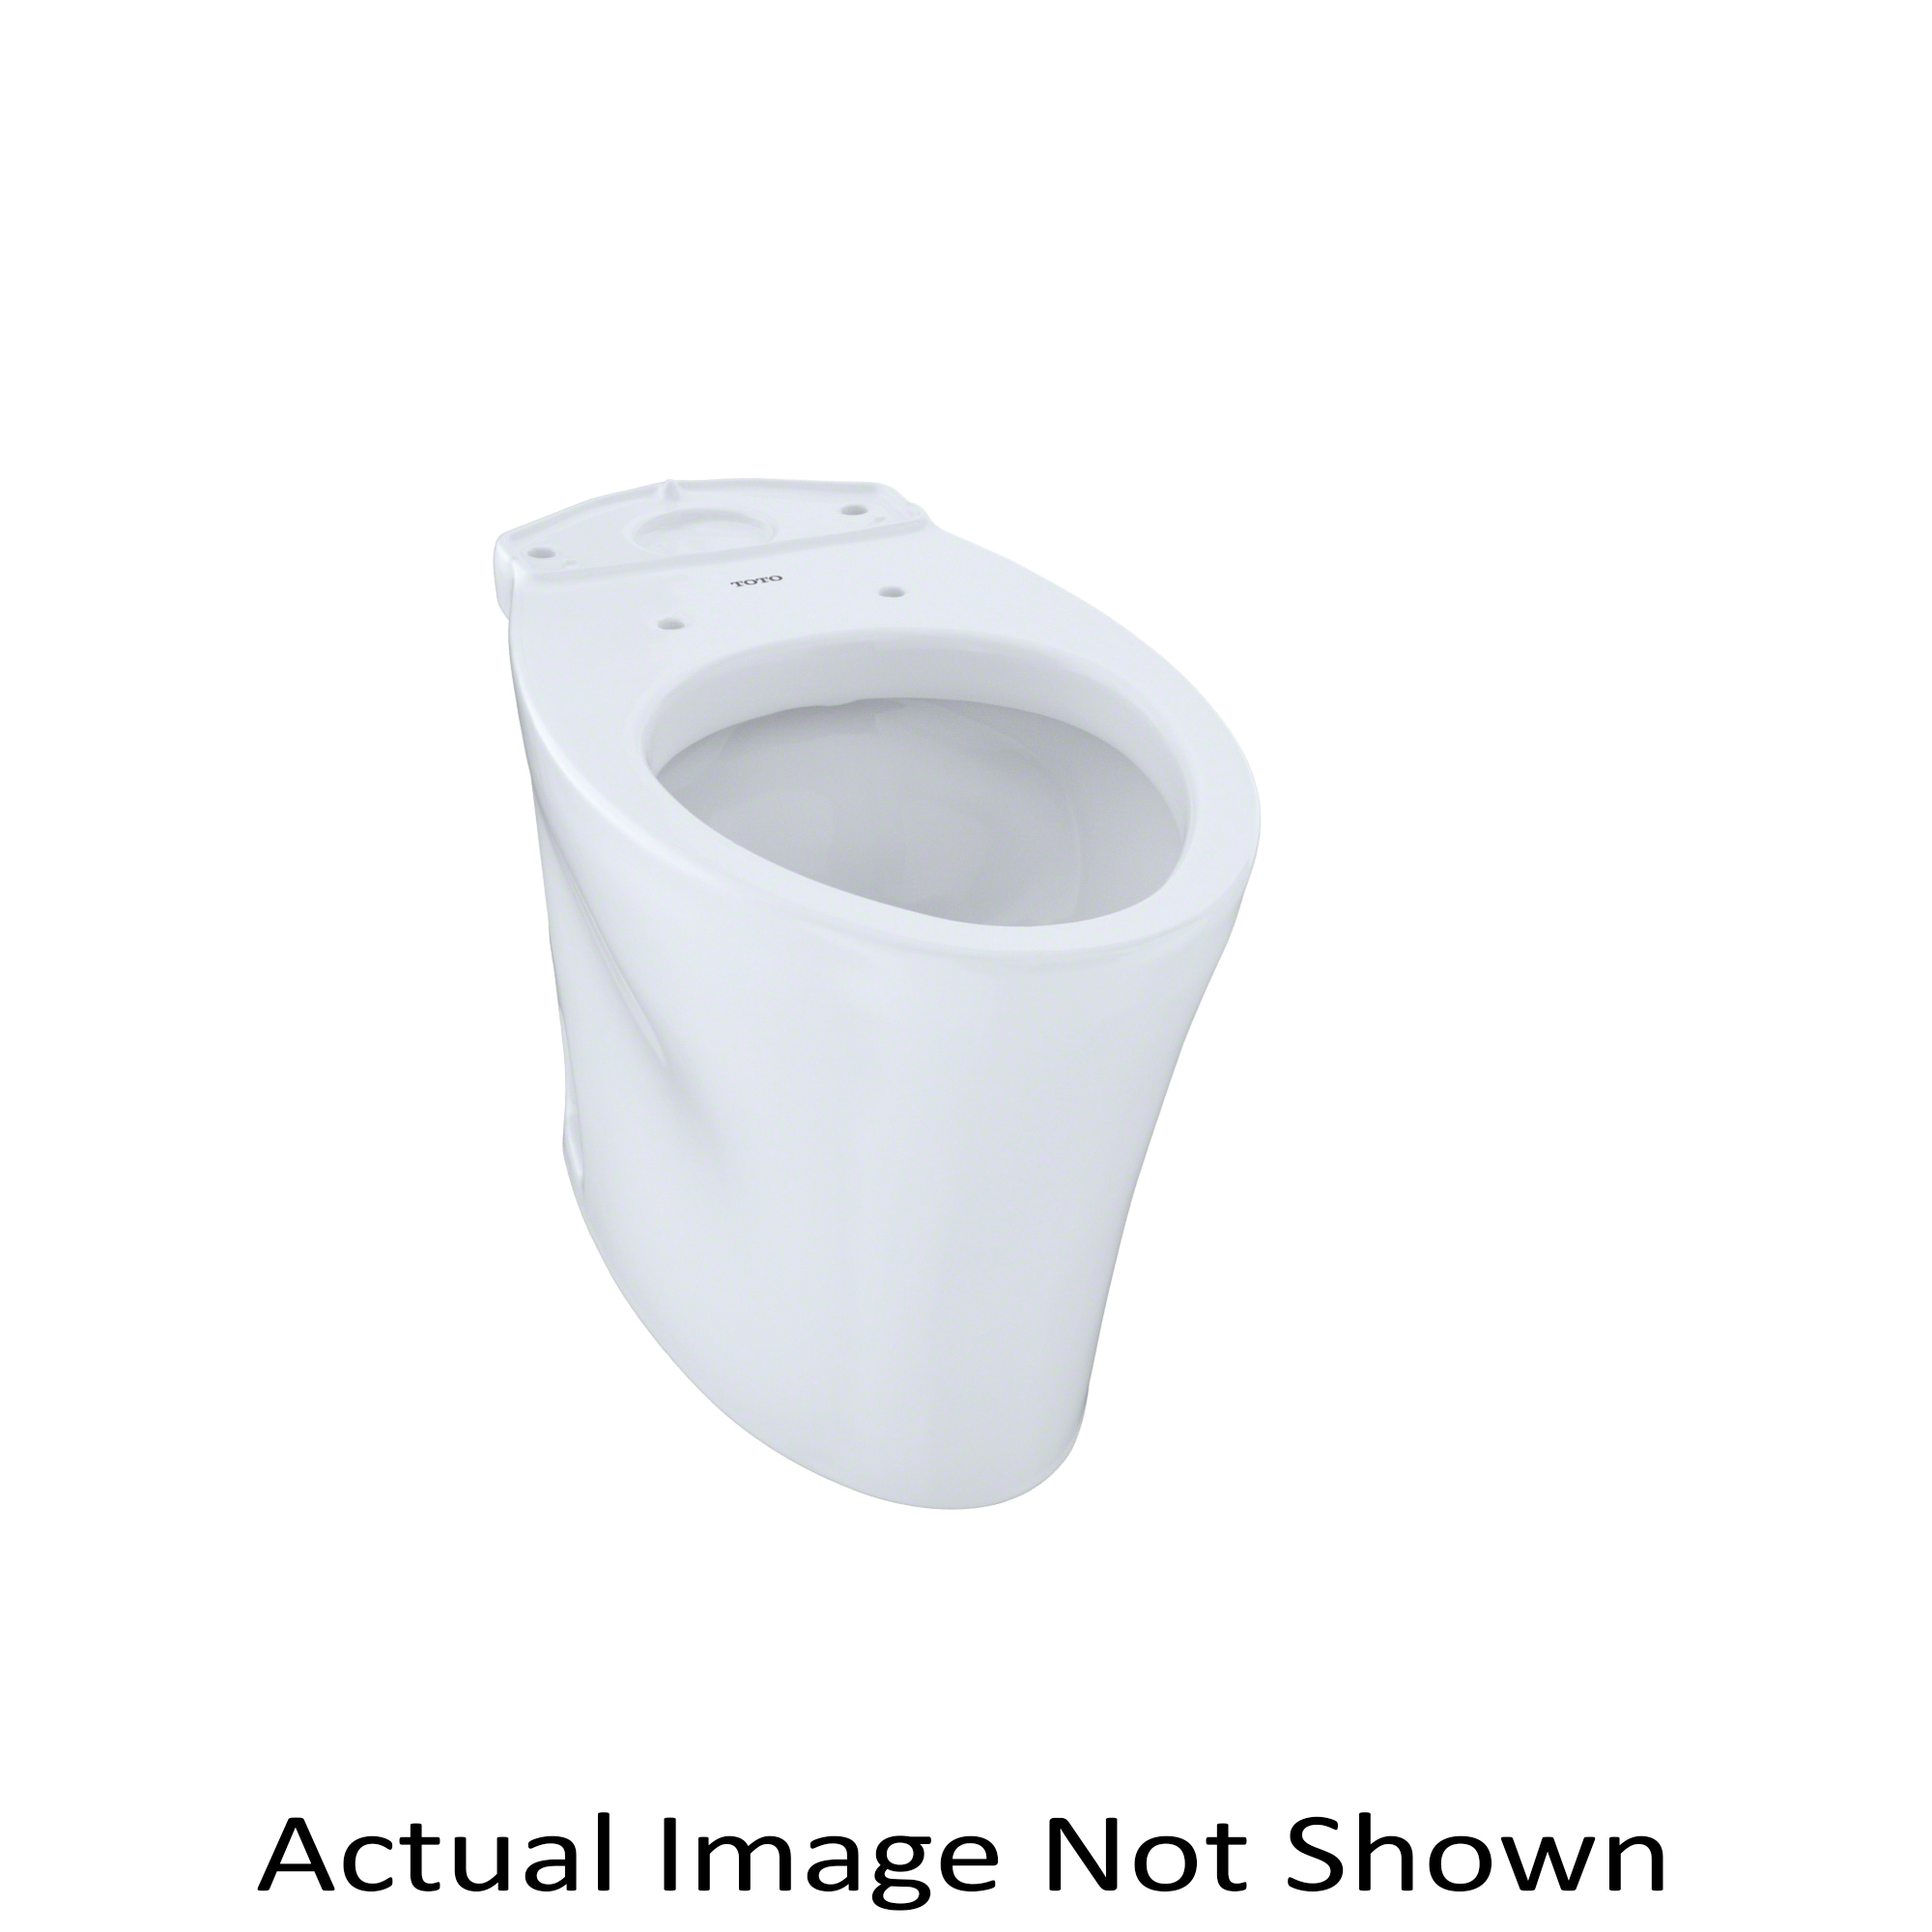 Toto® CT794EF#11 Toilet Bowl, Elongated, 8-1/4 x 10-1/4 in Water Surface, 17-1/4 in H Rim, 2-1/8 in Trapway, Import